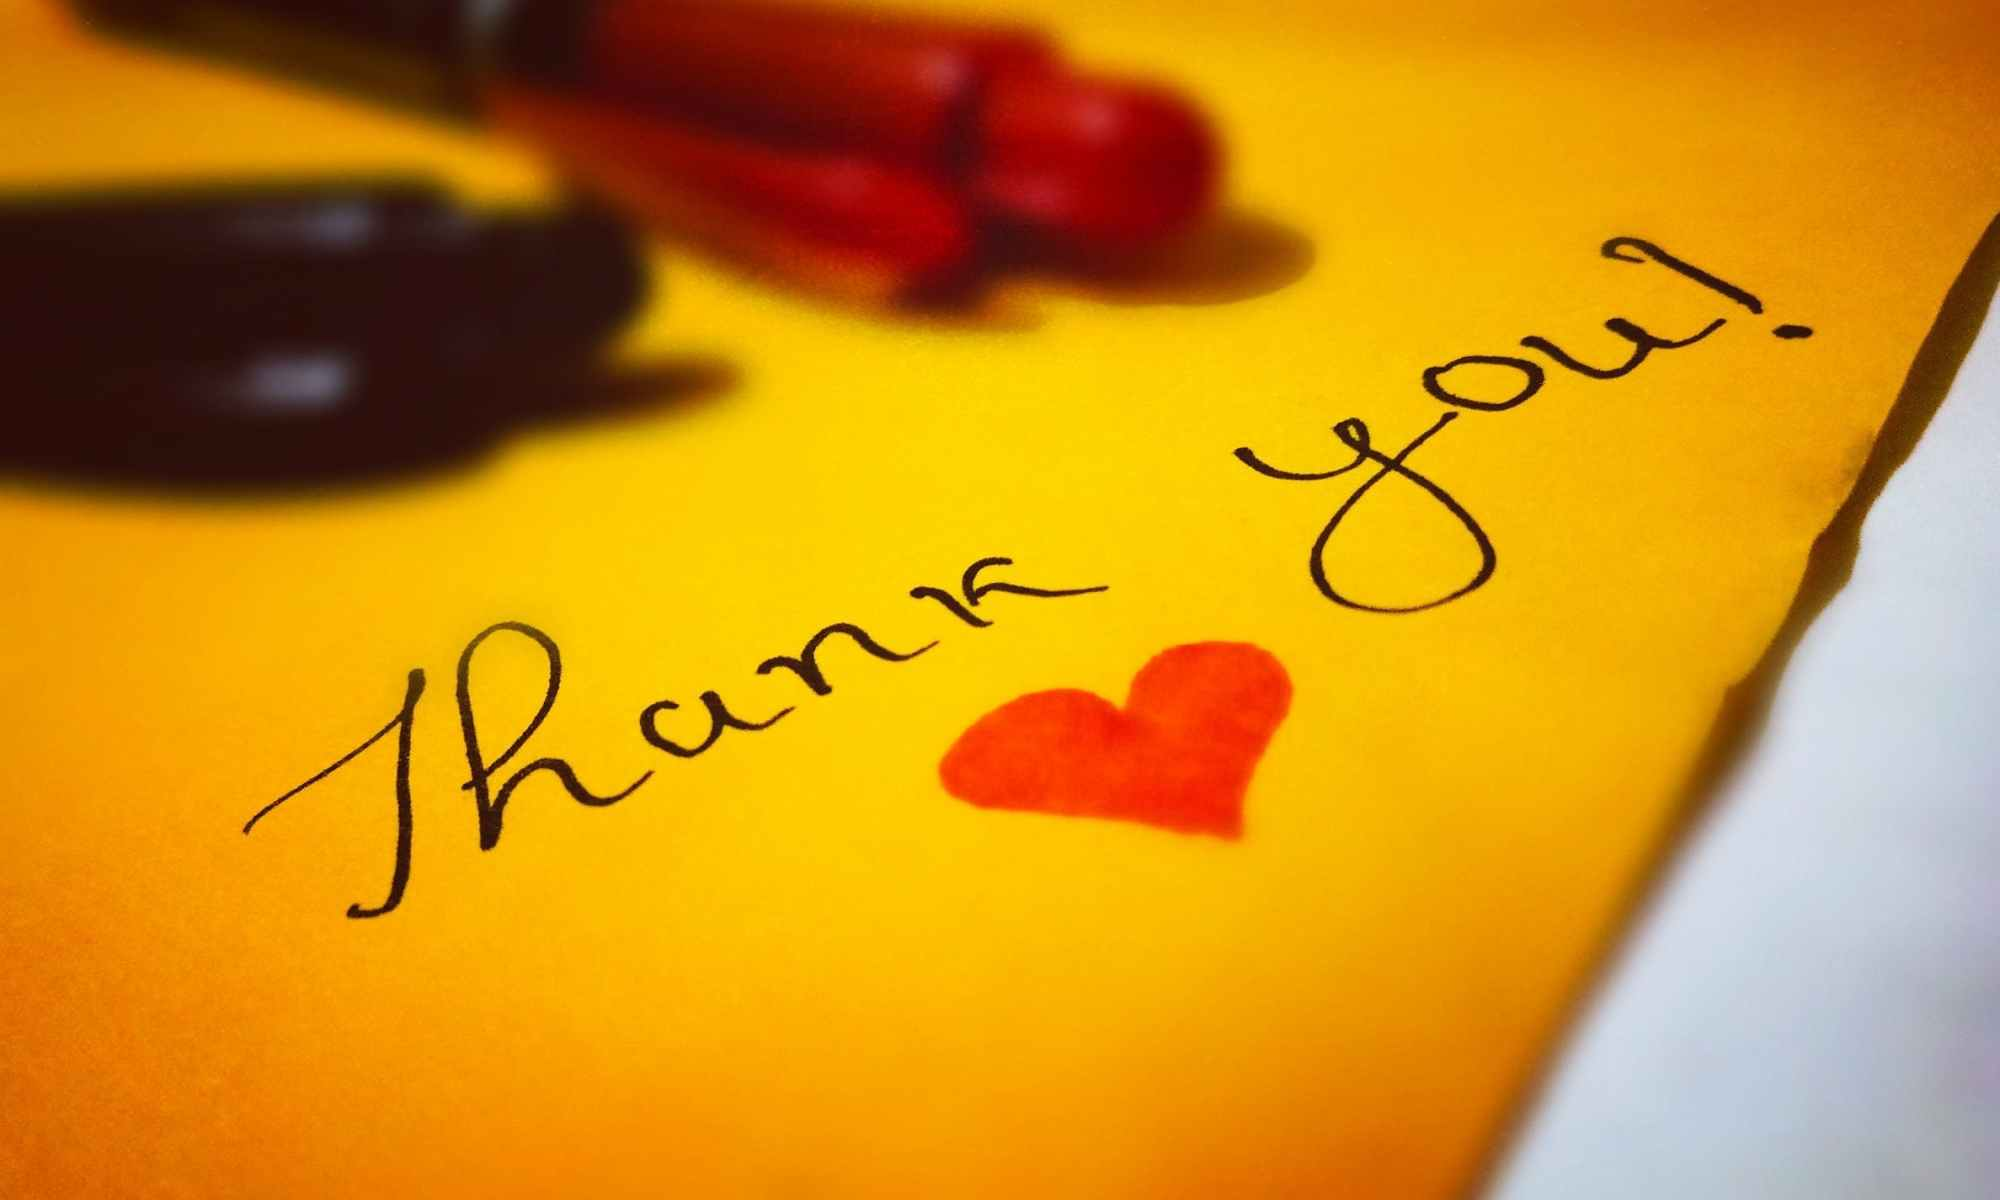 Thank you! heart text written on yellow paper with pens alongside